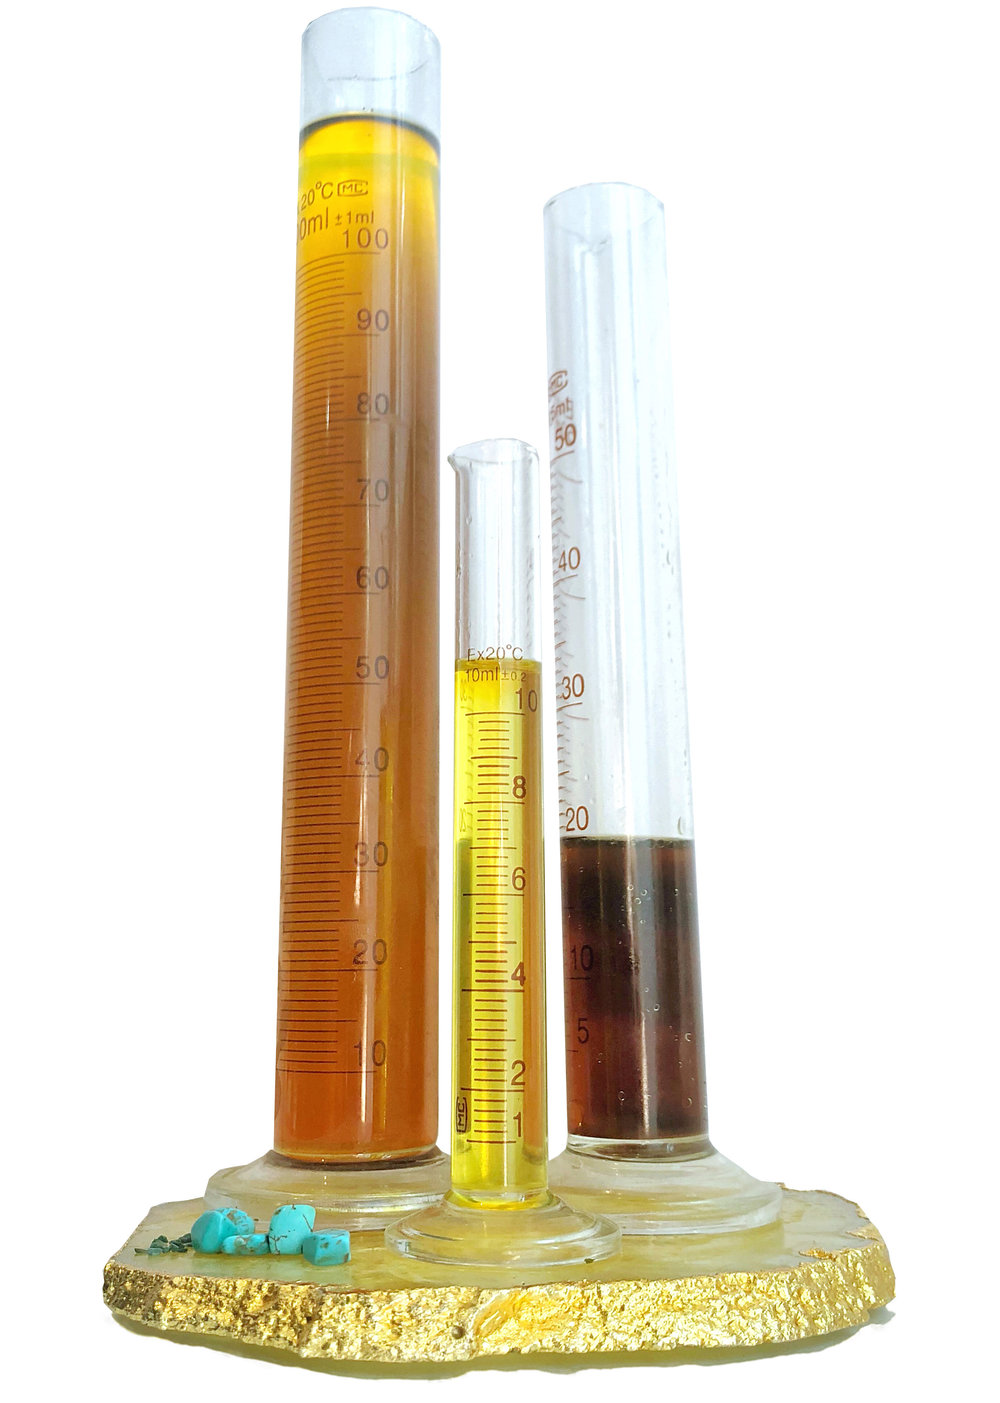 We create all solar infused oils, essential oil blends, tinctures and elixirs used within our products.